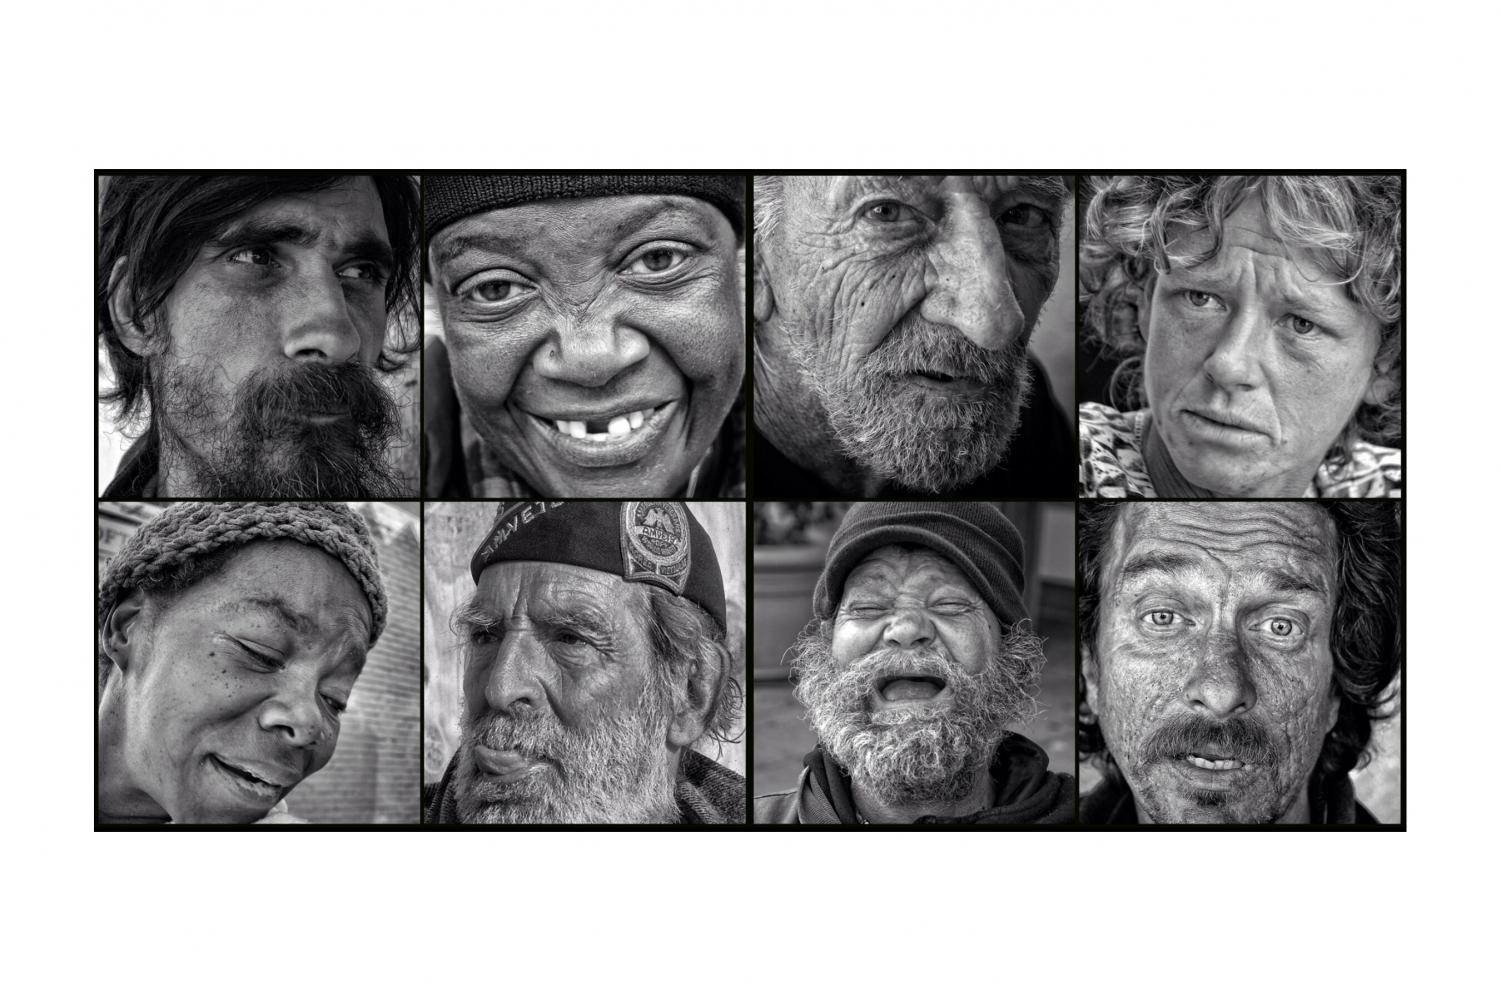 Montage of a variation of what homelessness actually looks like. Another way of destigmatizing what homelessness has been said to look like vs. what the reality is. People on the streets are just that: people. Photo courtesy of David Blumenkrantz